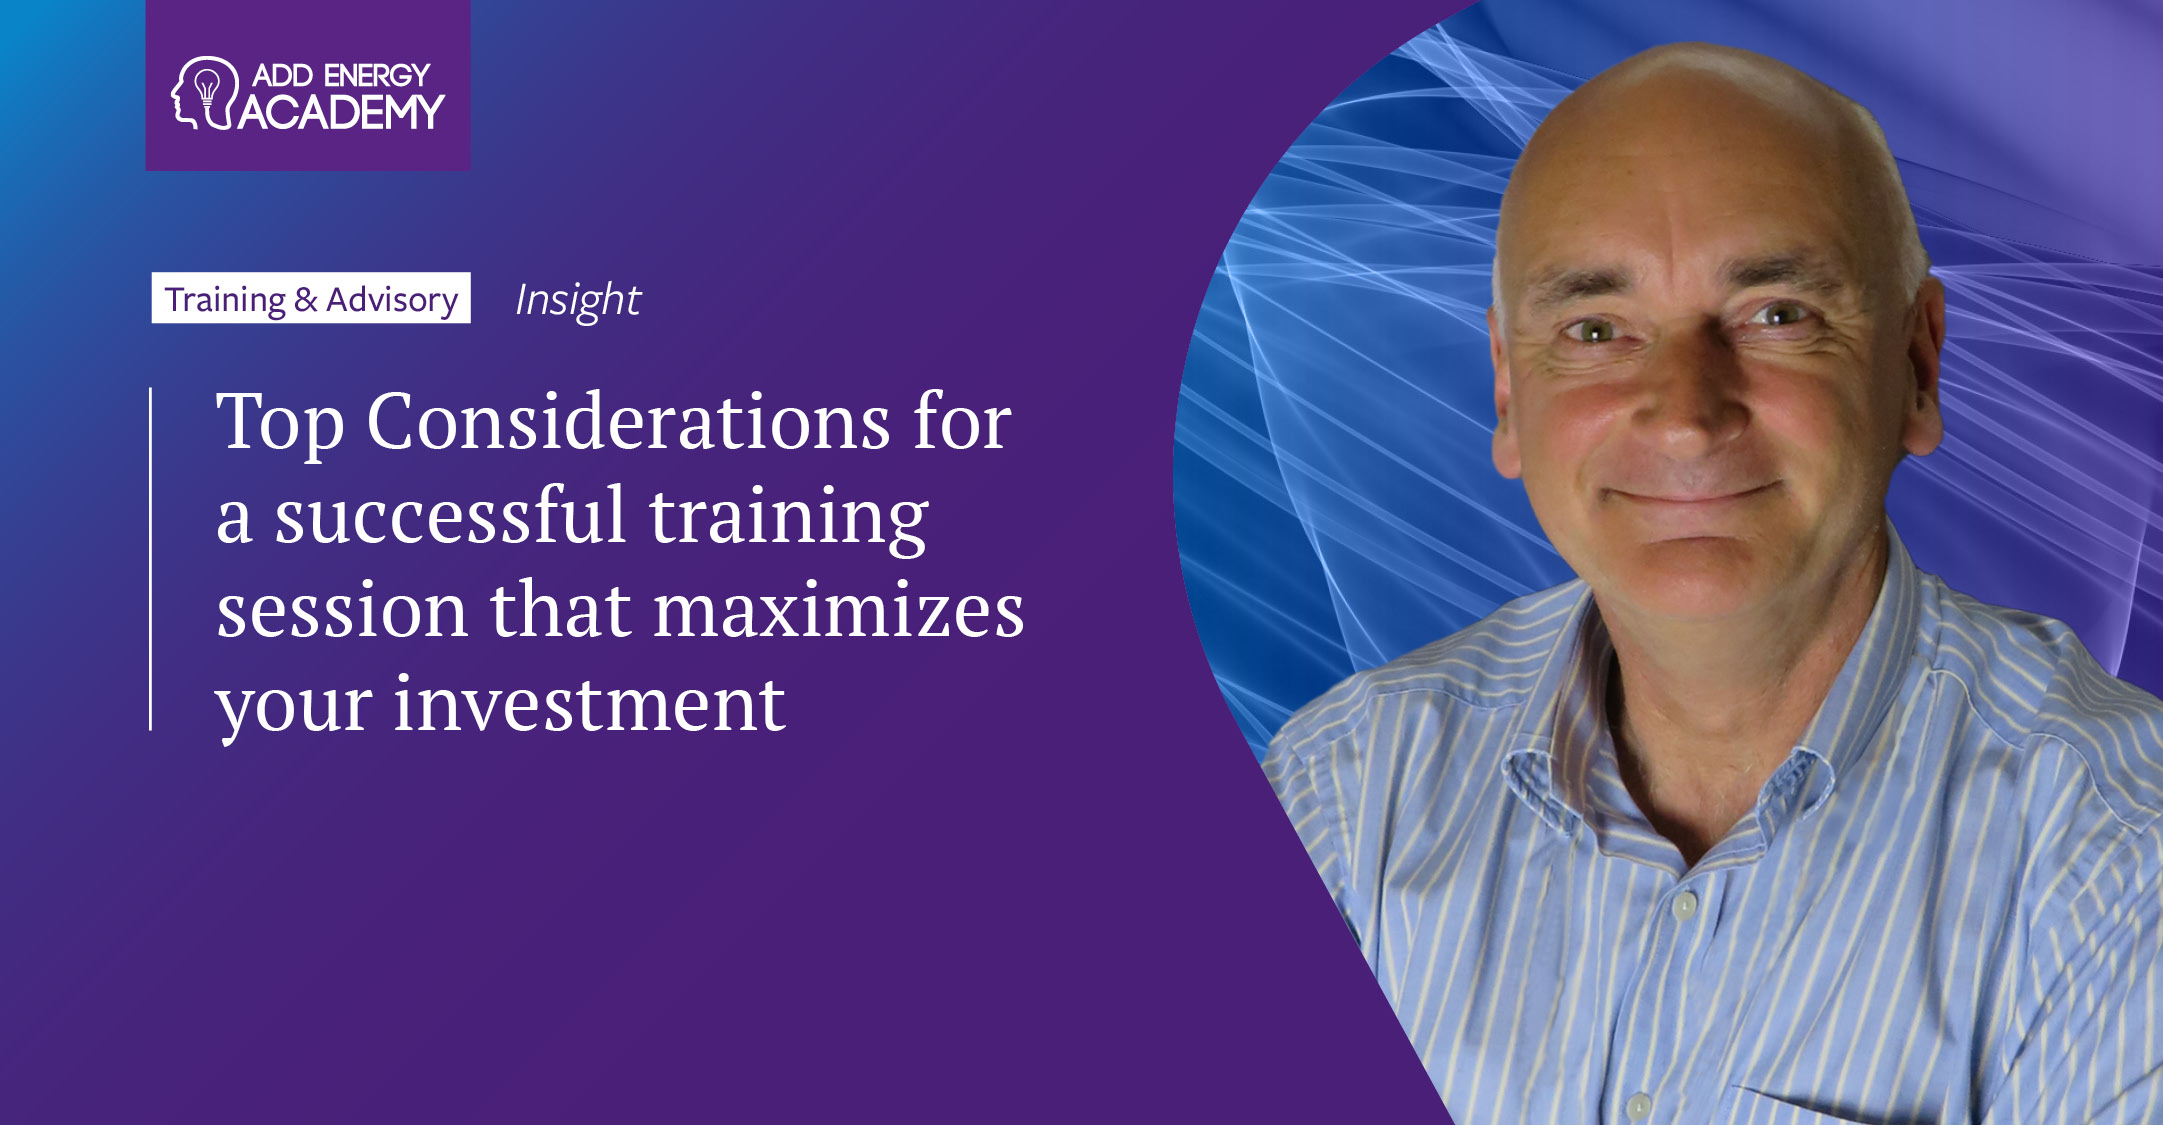 Top considerations for a successful training session that maximizes your investment